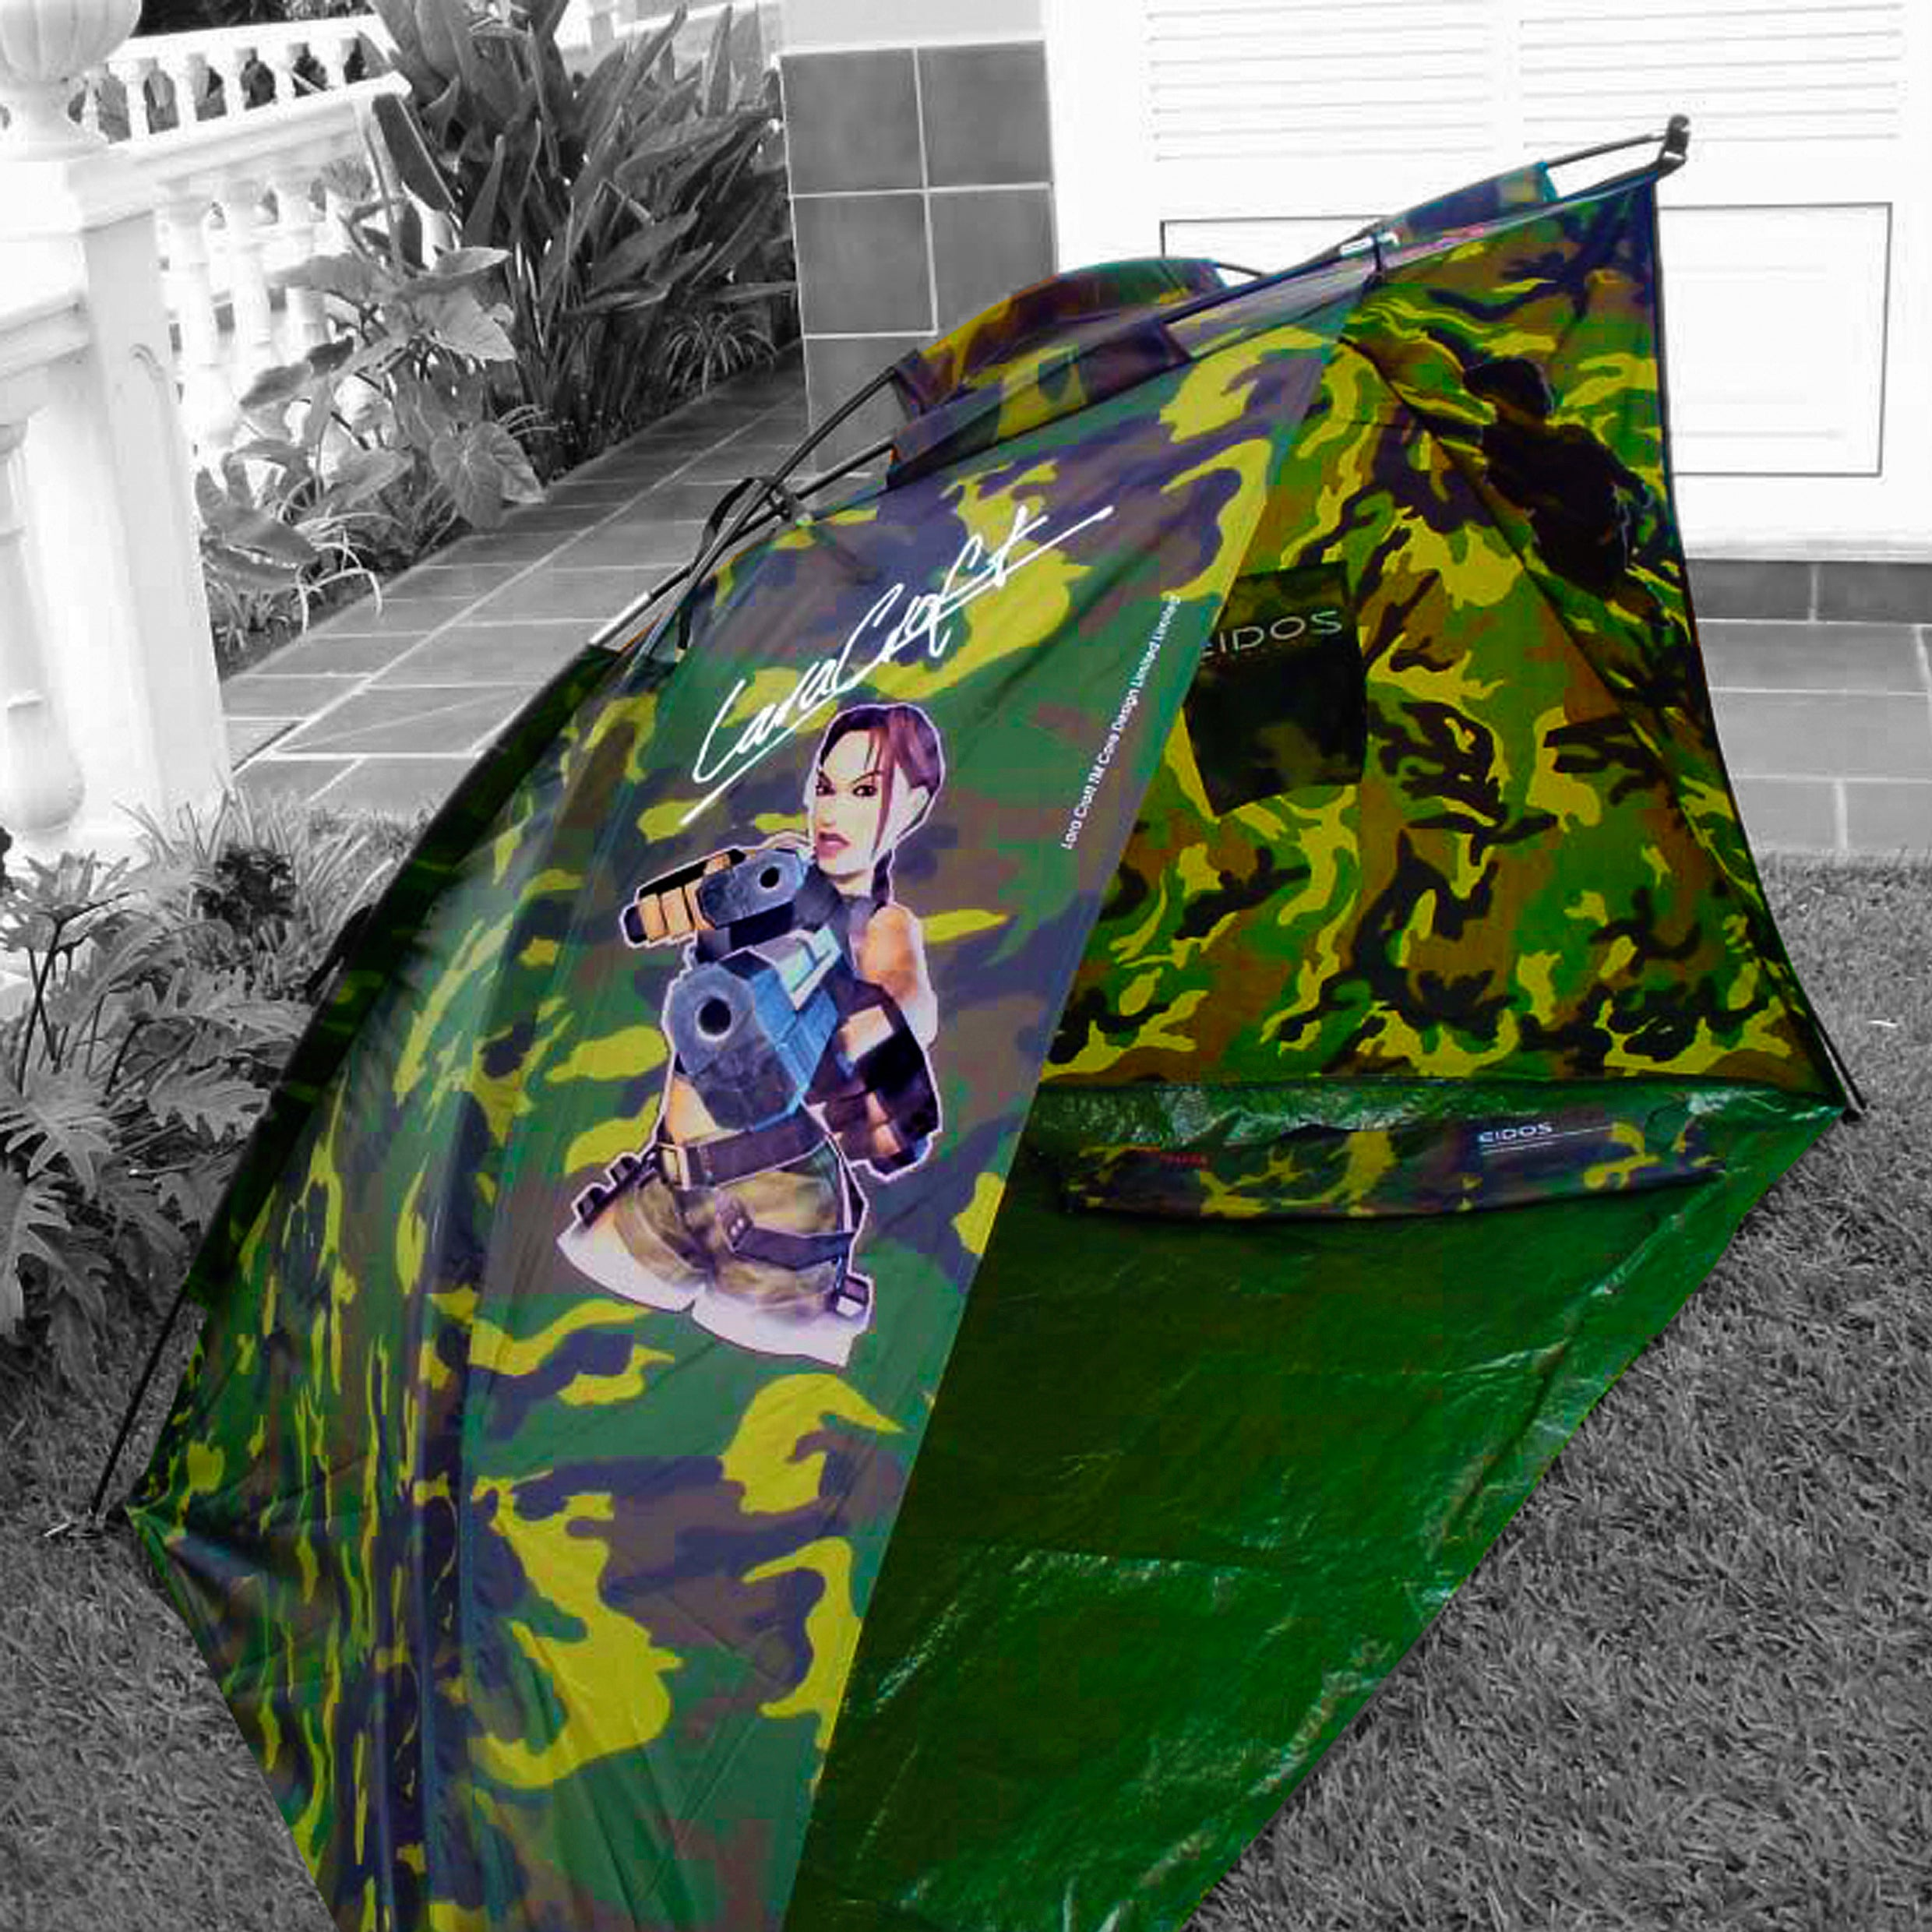 A photo of a standard green theme colored camouflage camping tent with a decal of Lara Croft from the Angel of Darkness on it and her signature